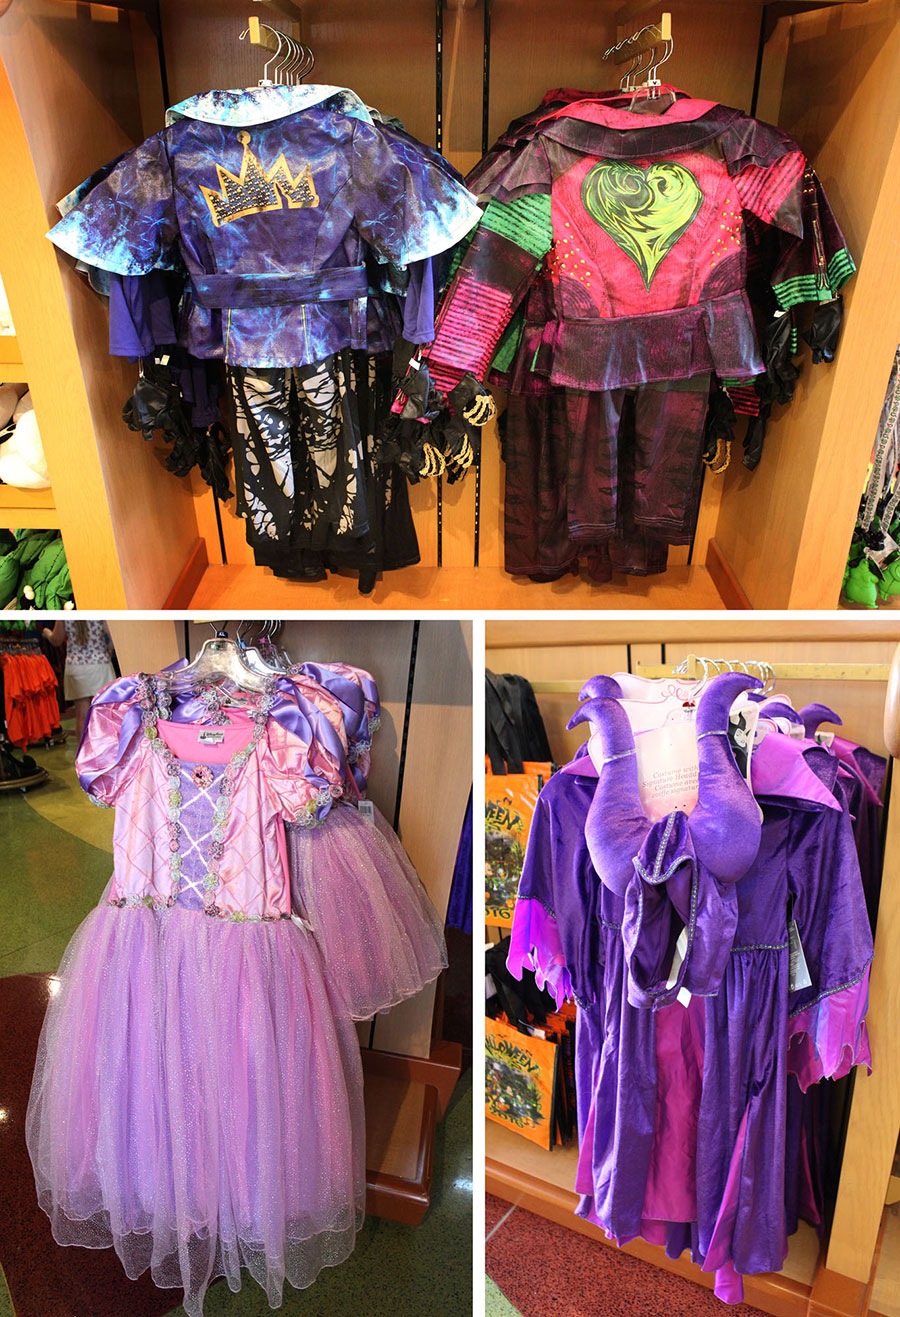 #WonderFALL Halloween Costume Ideas from Disney Parks & WonderFALLDisney Halloween Costume Ideas from Disney Parks | Disney ...